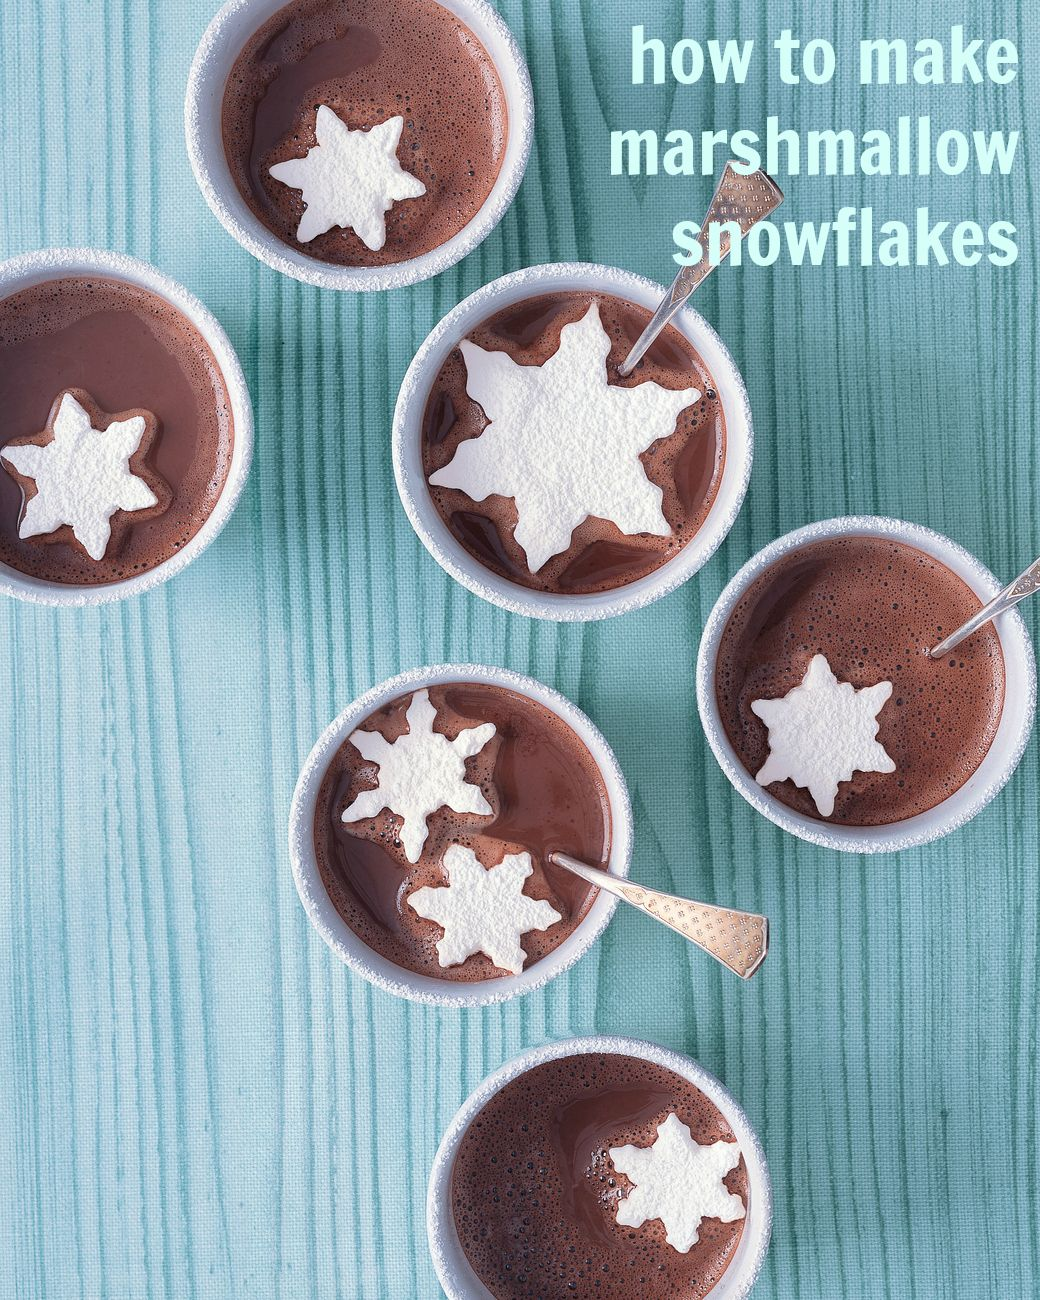 Use a variety of snowflake cookie cutters to turn basic marshmallows into a fun hot cocoa topper.